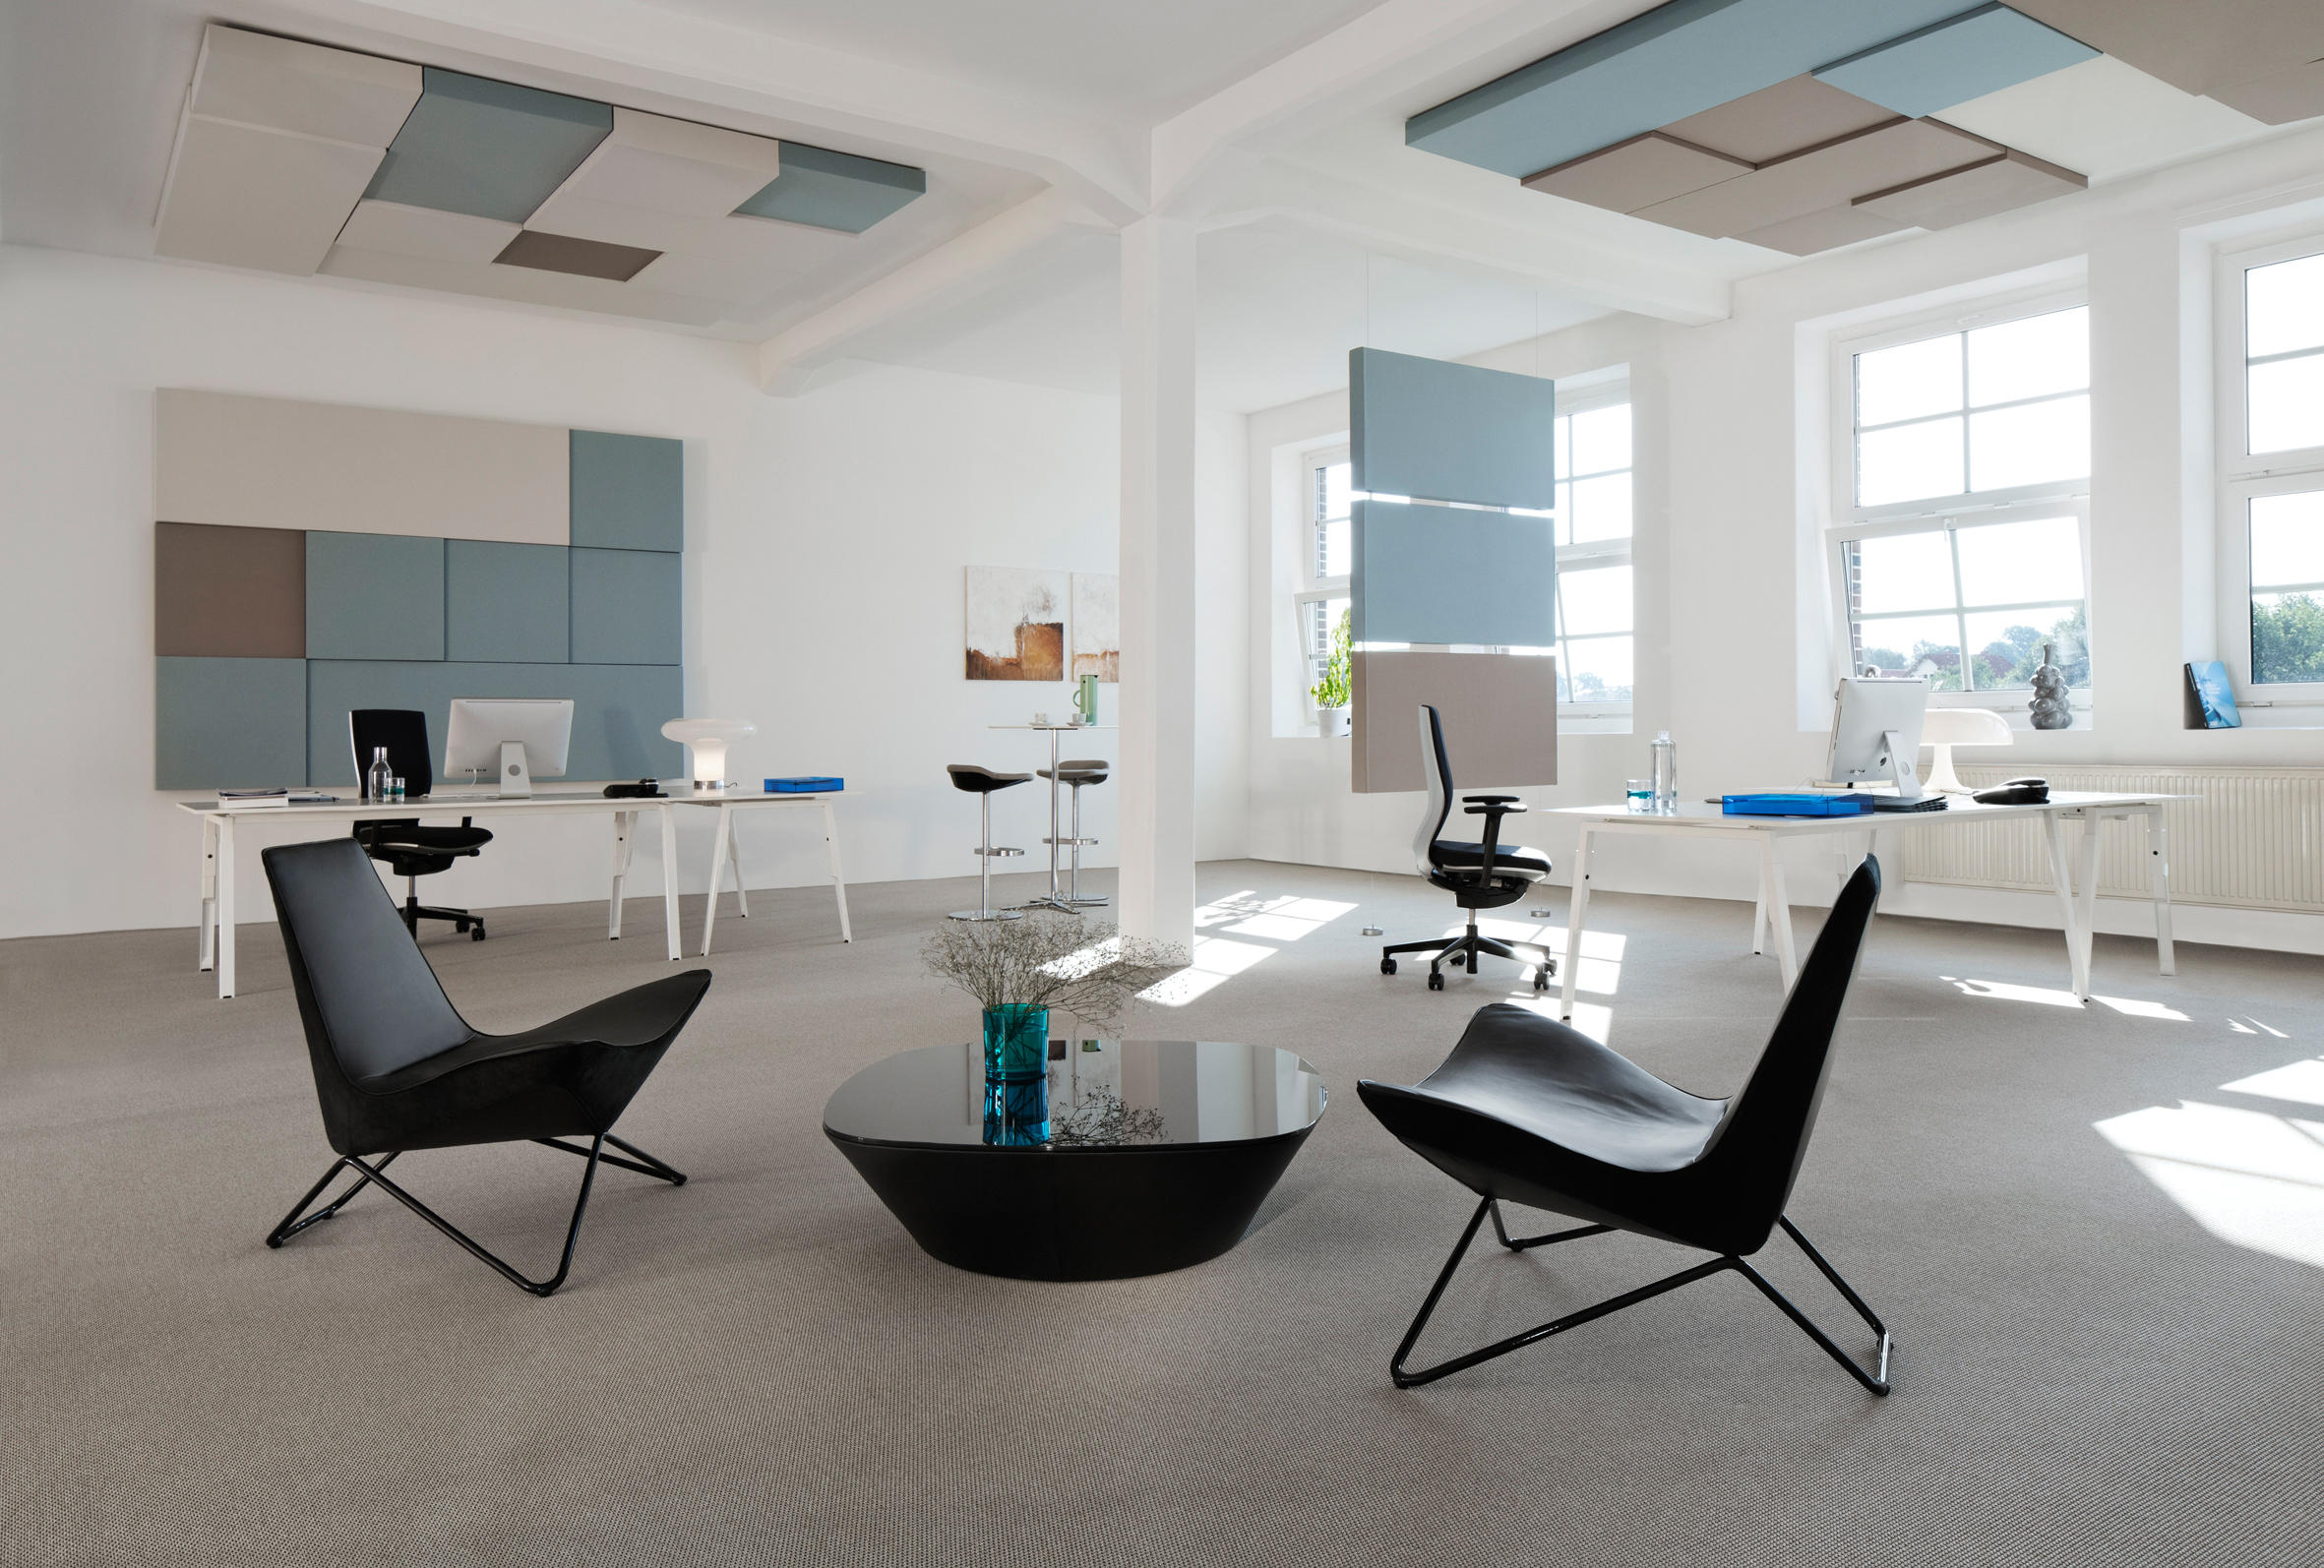 Cas cube deckensysteme von carpet concept architonic for Office design services